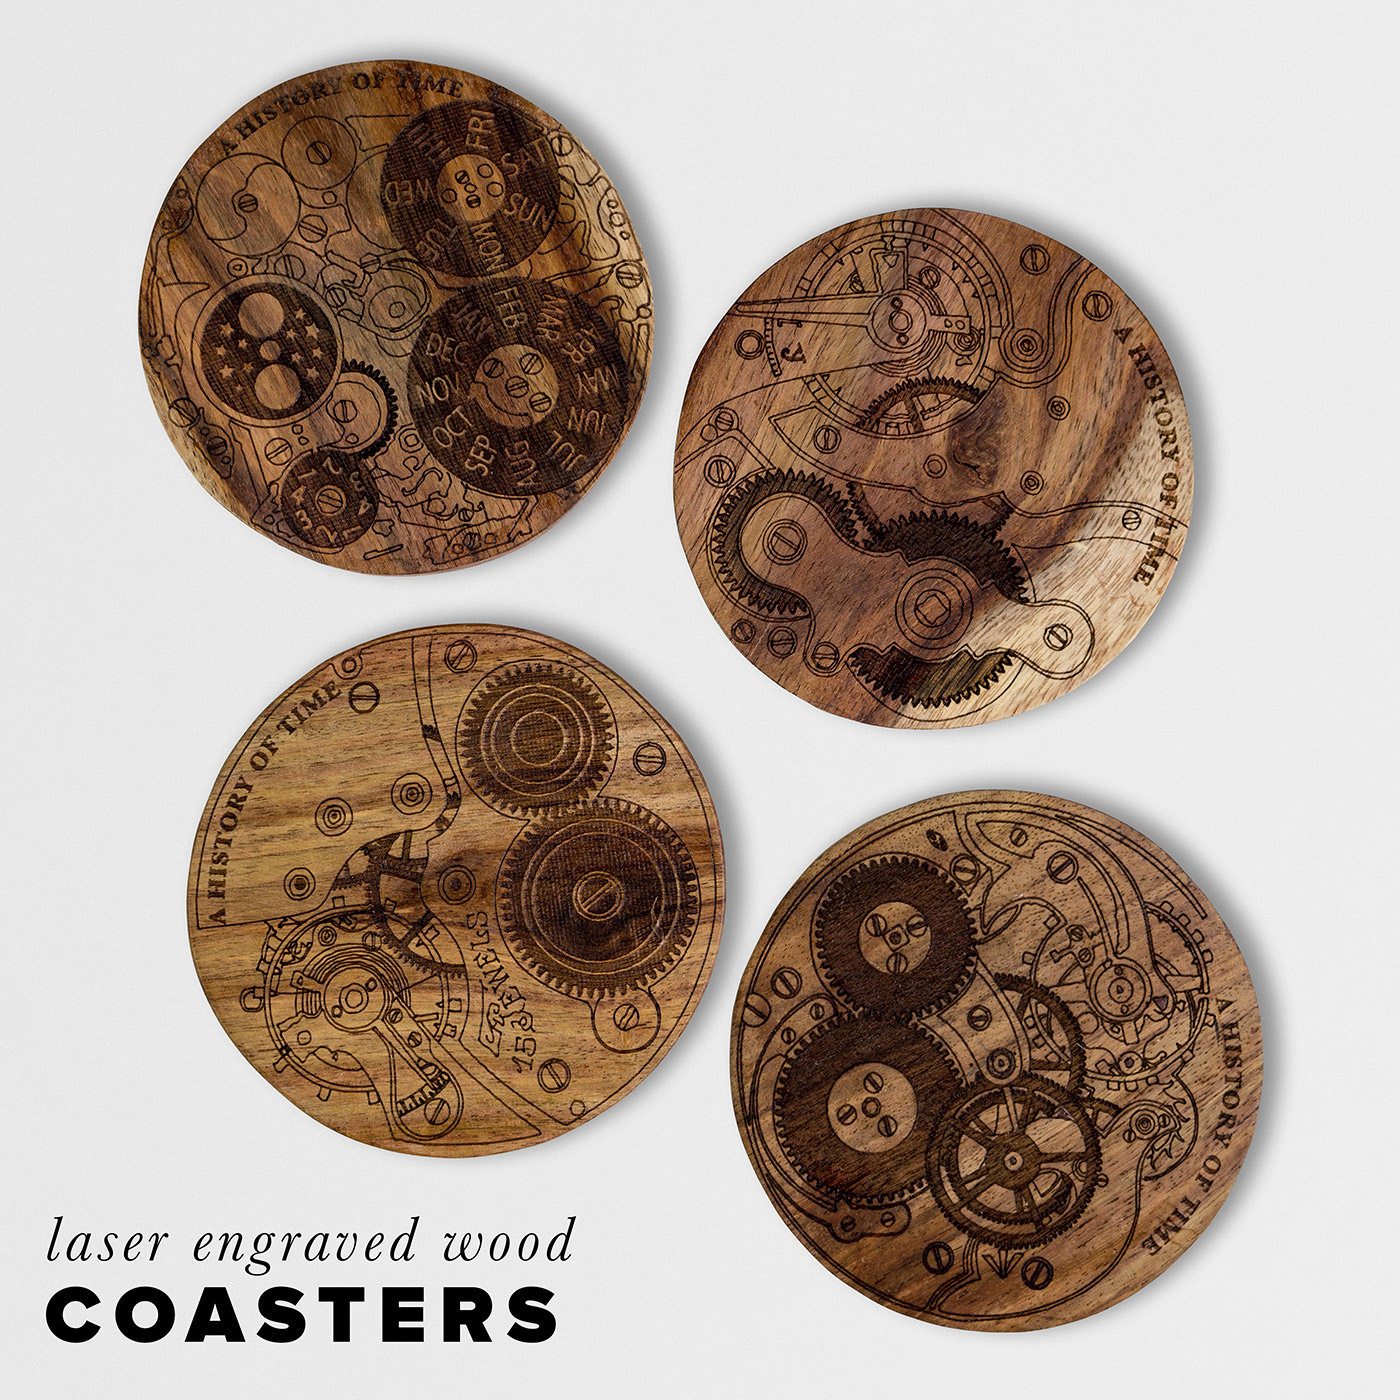 Where To Buy Coasters History Of Time Coasters The Awesomer